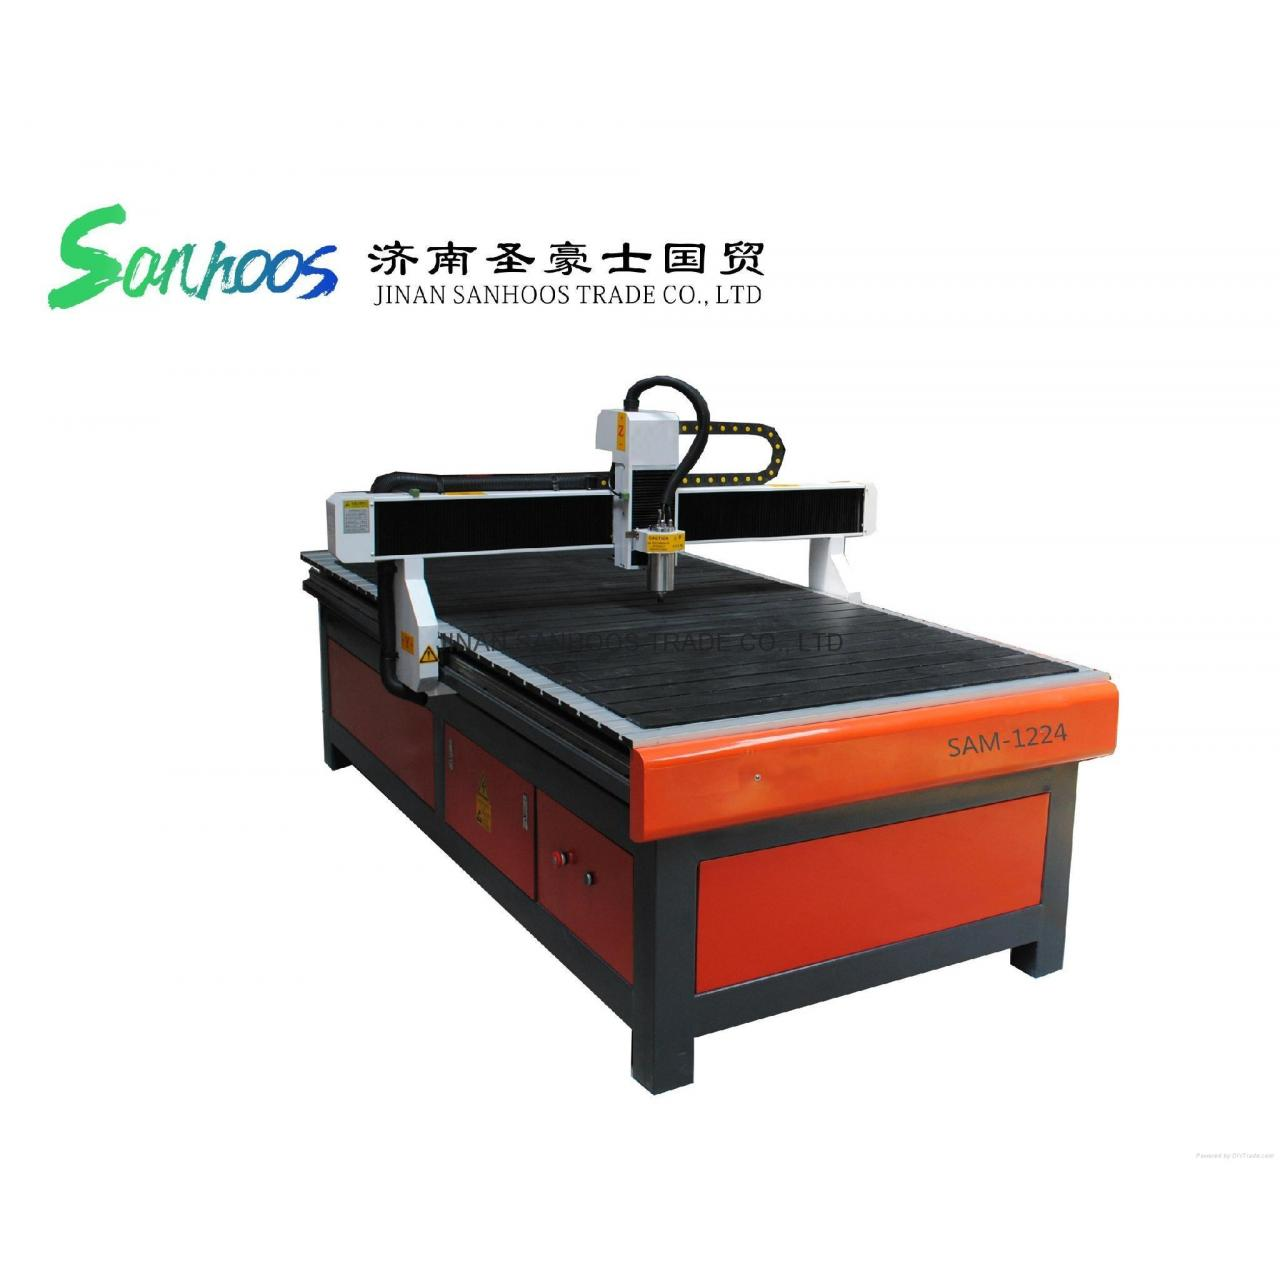 Sam Ball Screw CNC Router Machine SAM-1224 Manufactures